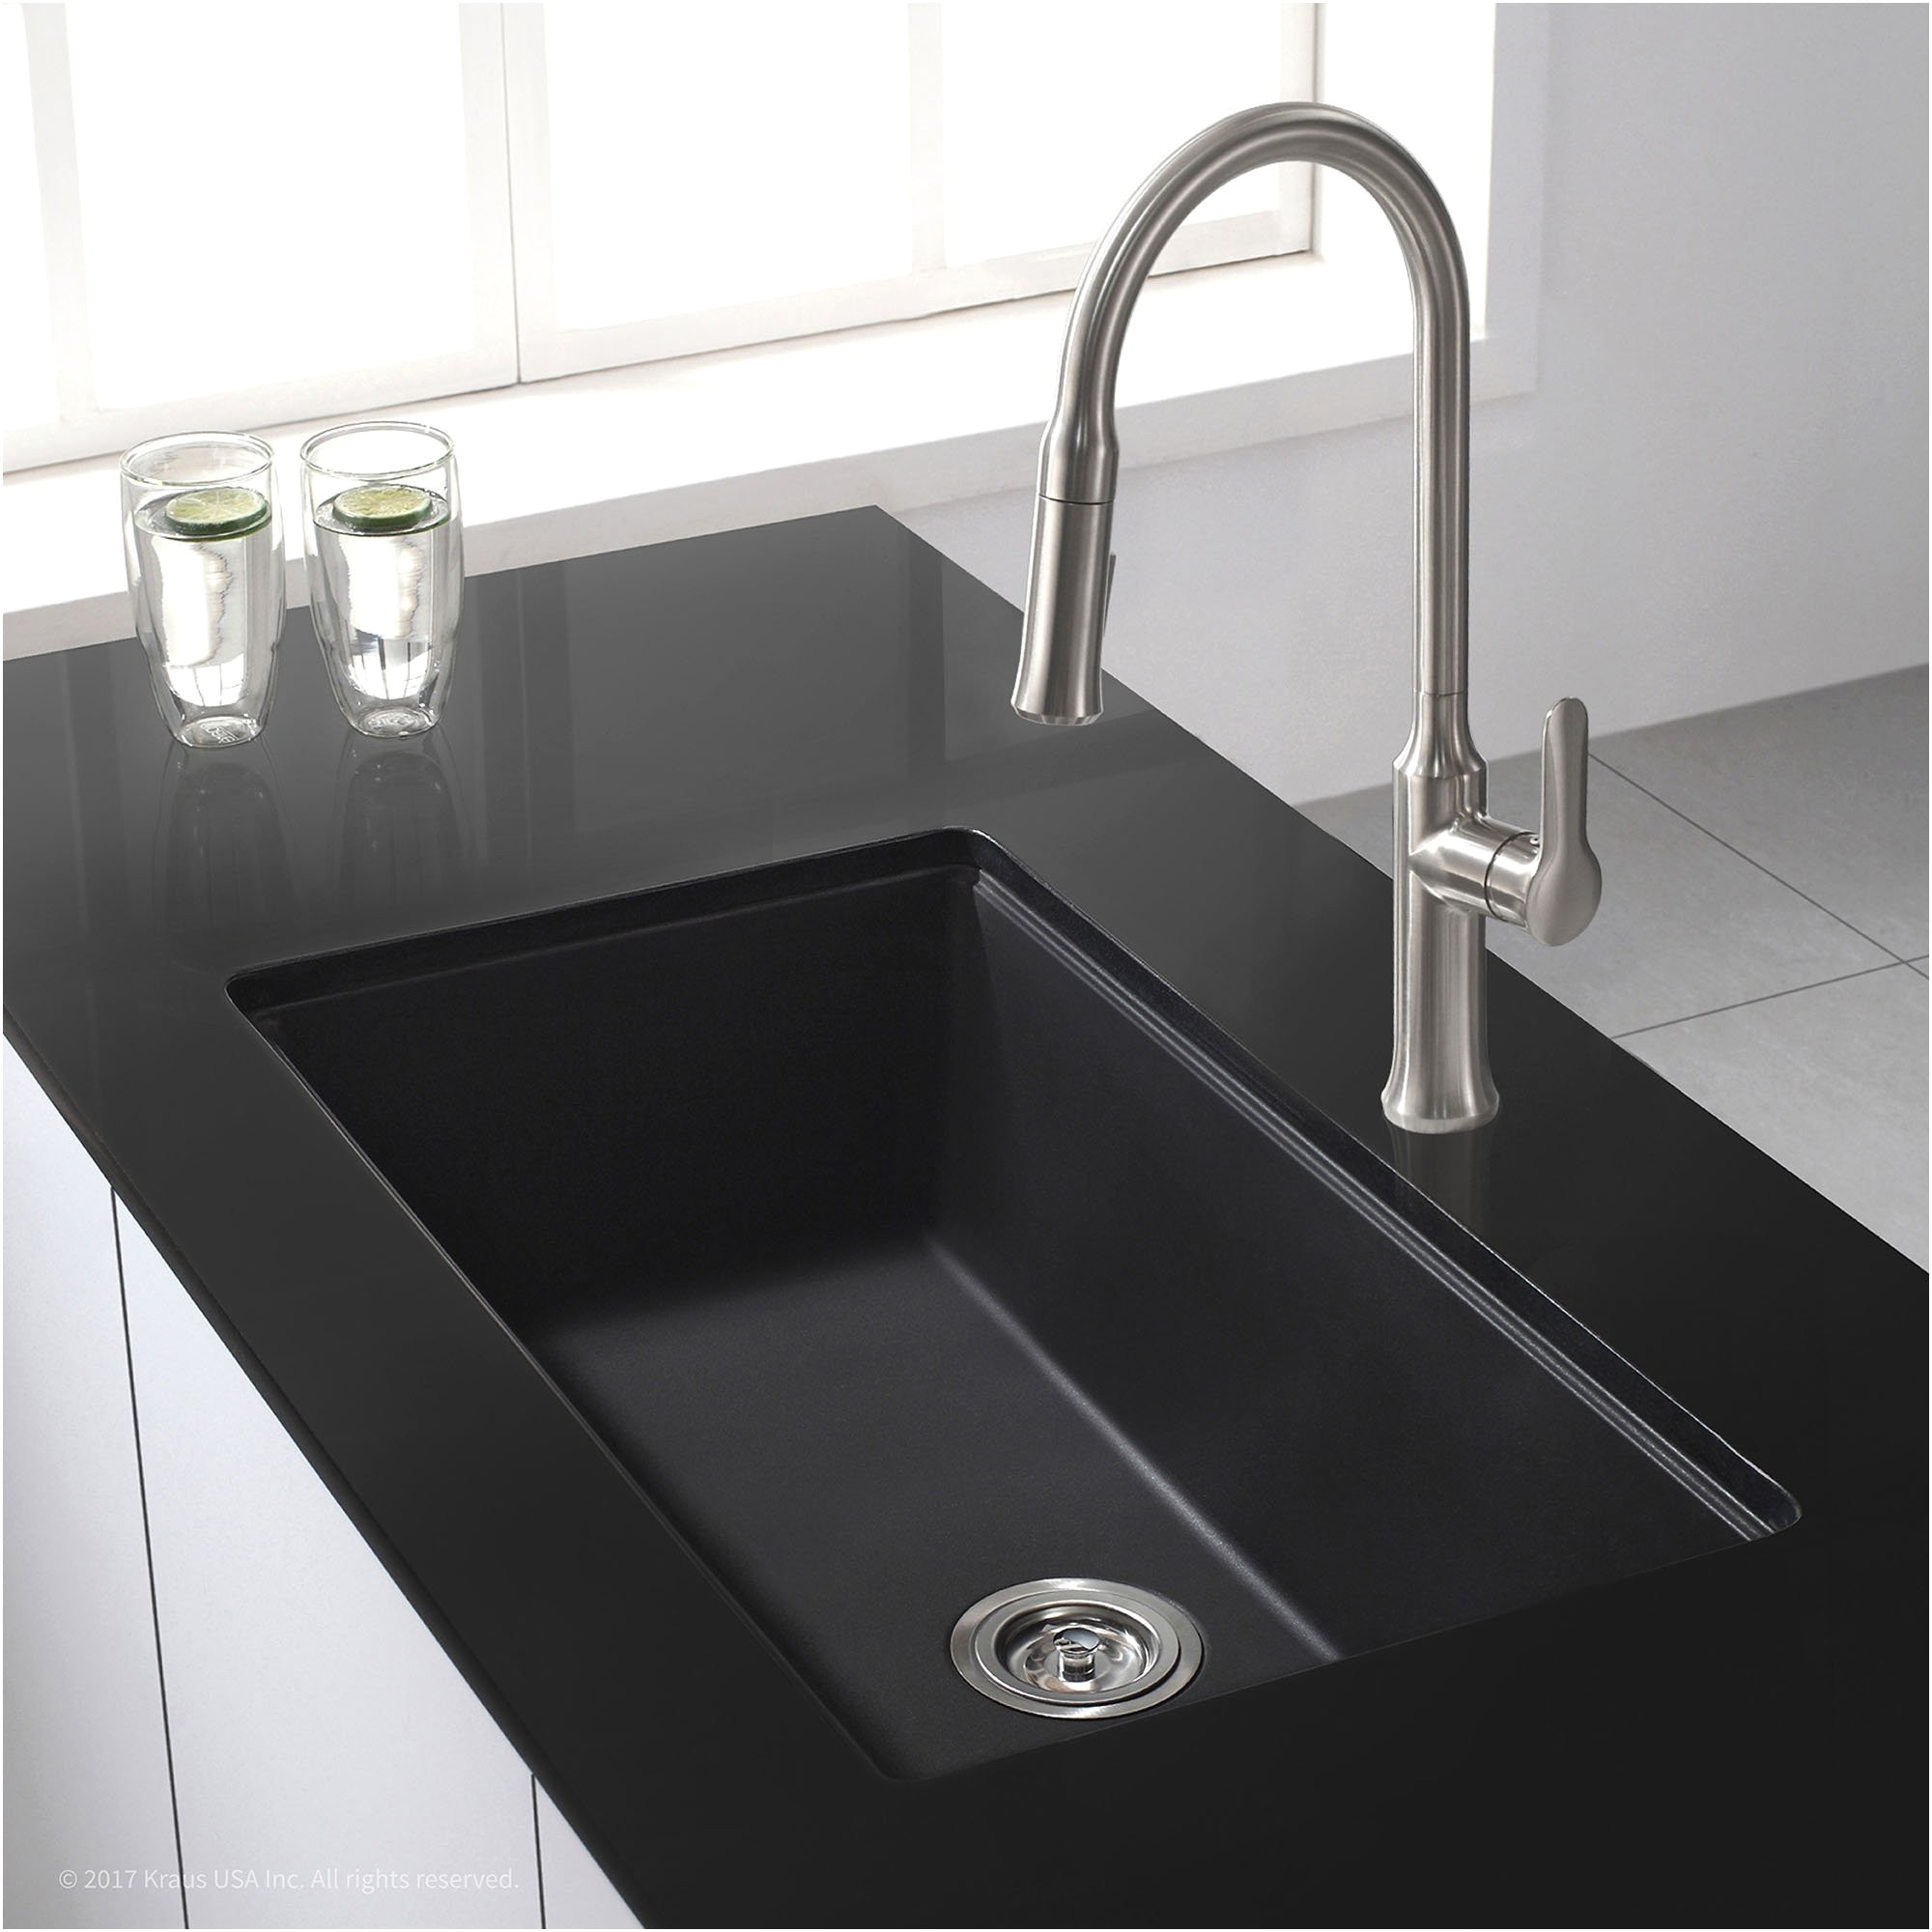 home design plumbing snake lowes awesome toilets lowes 0d plumbing snake lowes elegant kitchen sink